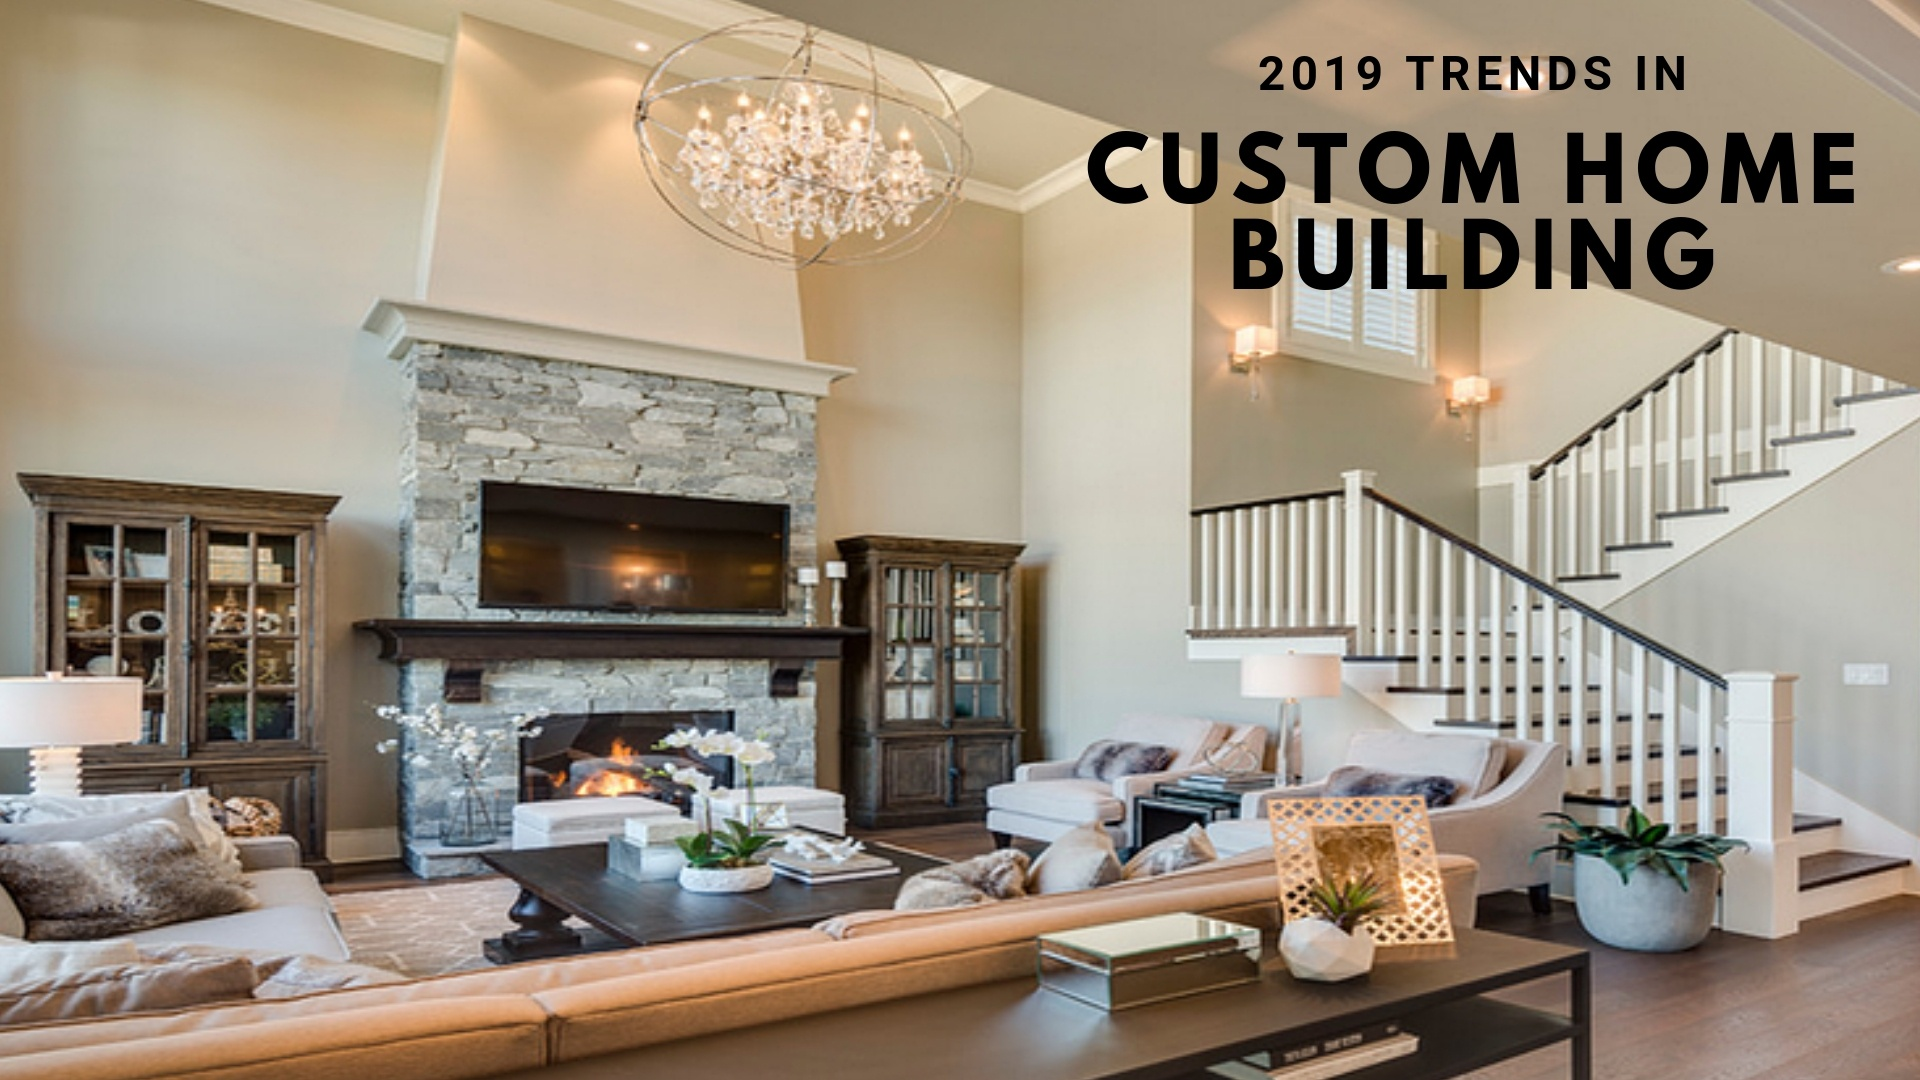 Custom home ideas already trending in 2019 - Home design trends 2019 ...